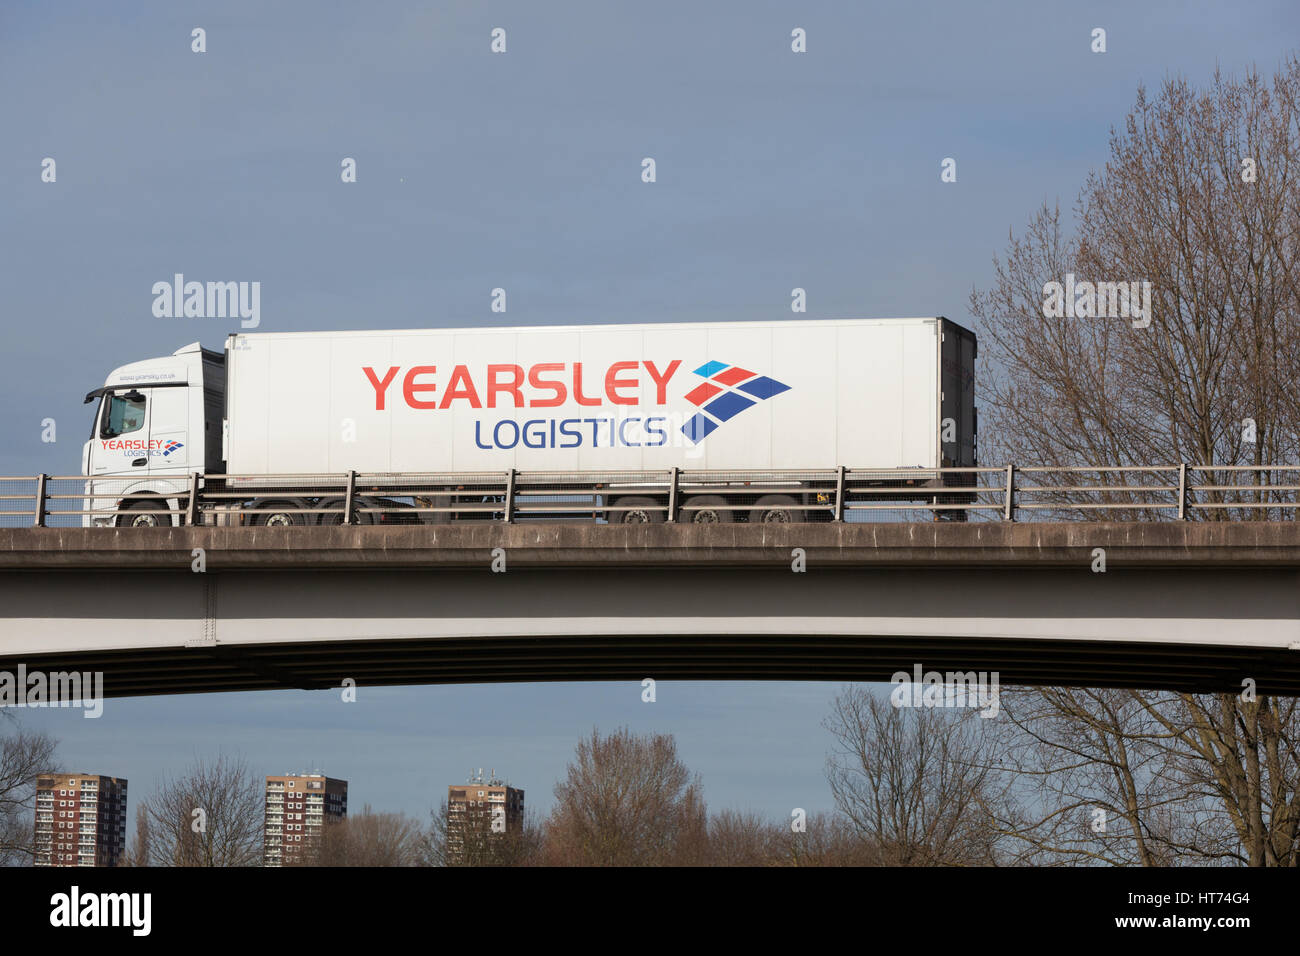 Yearsley Logistik LKW auf der Straße in den Midlands Stockfoto